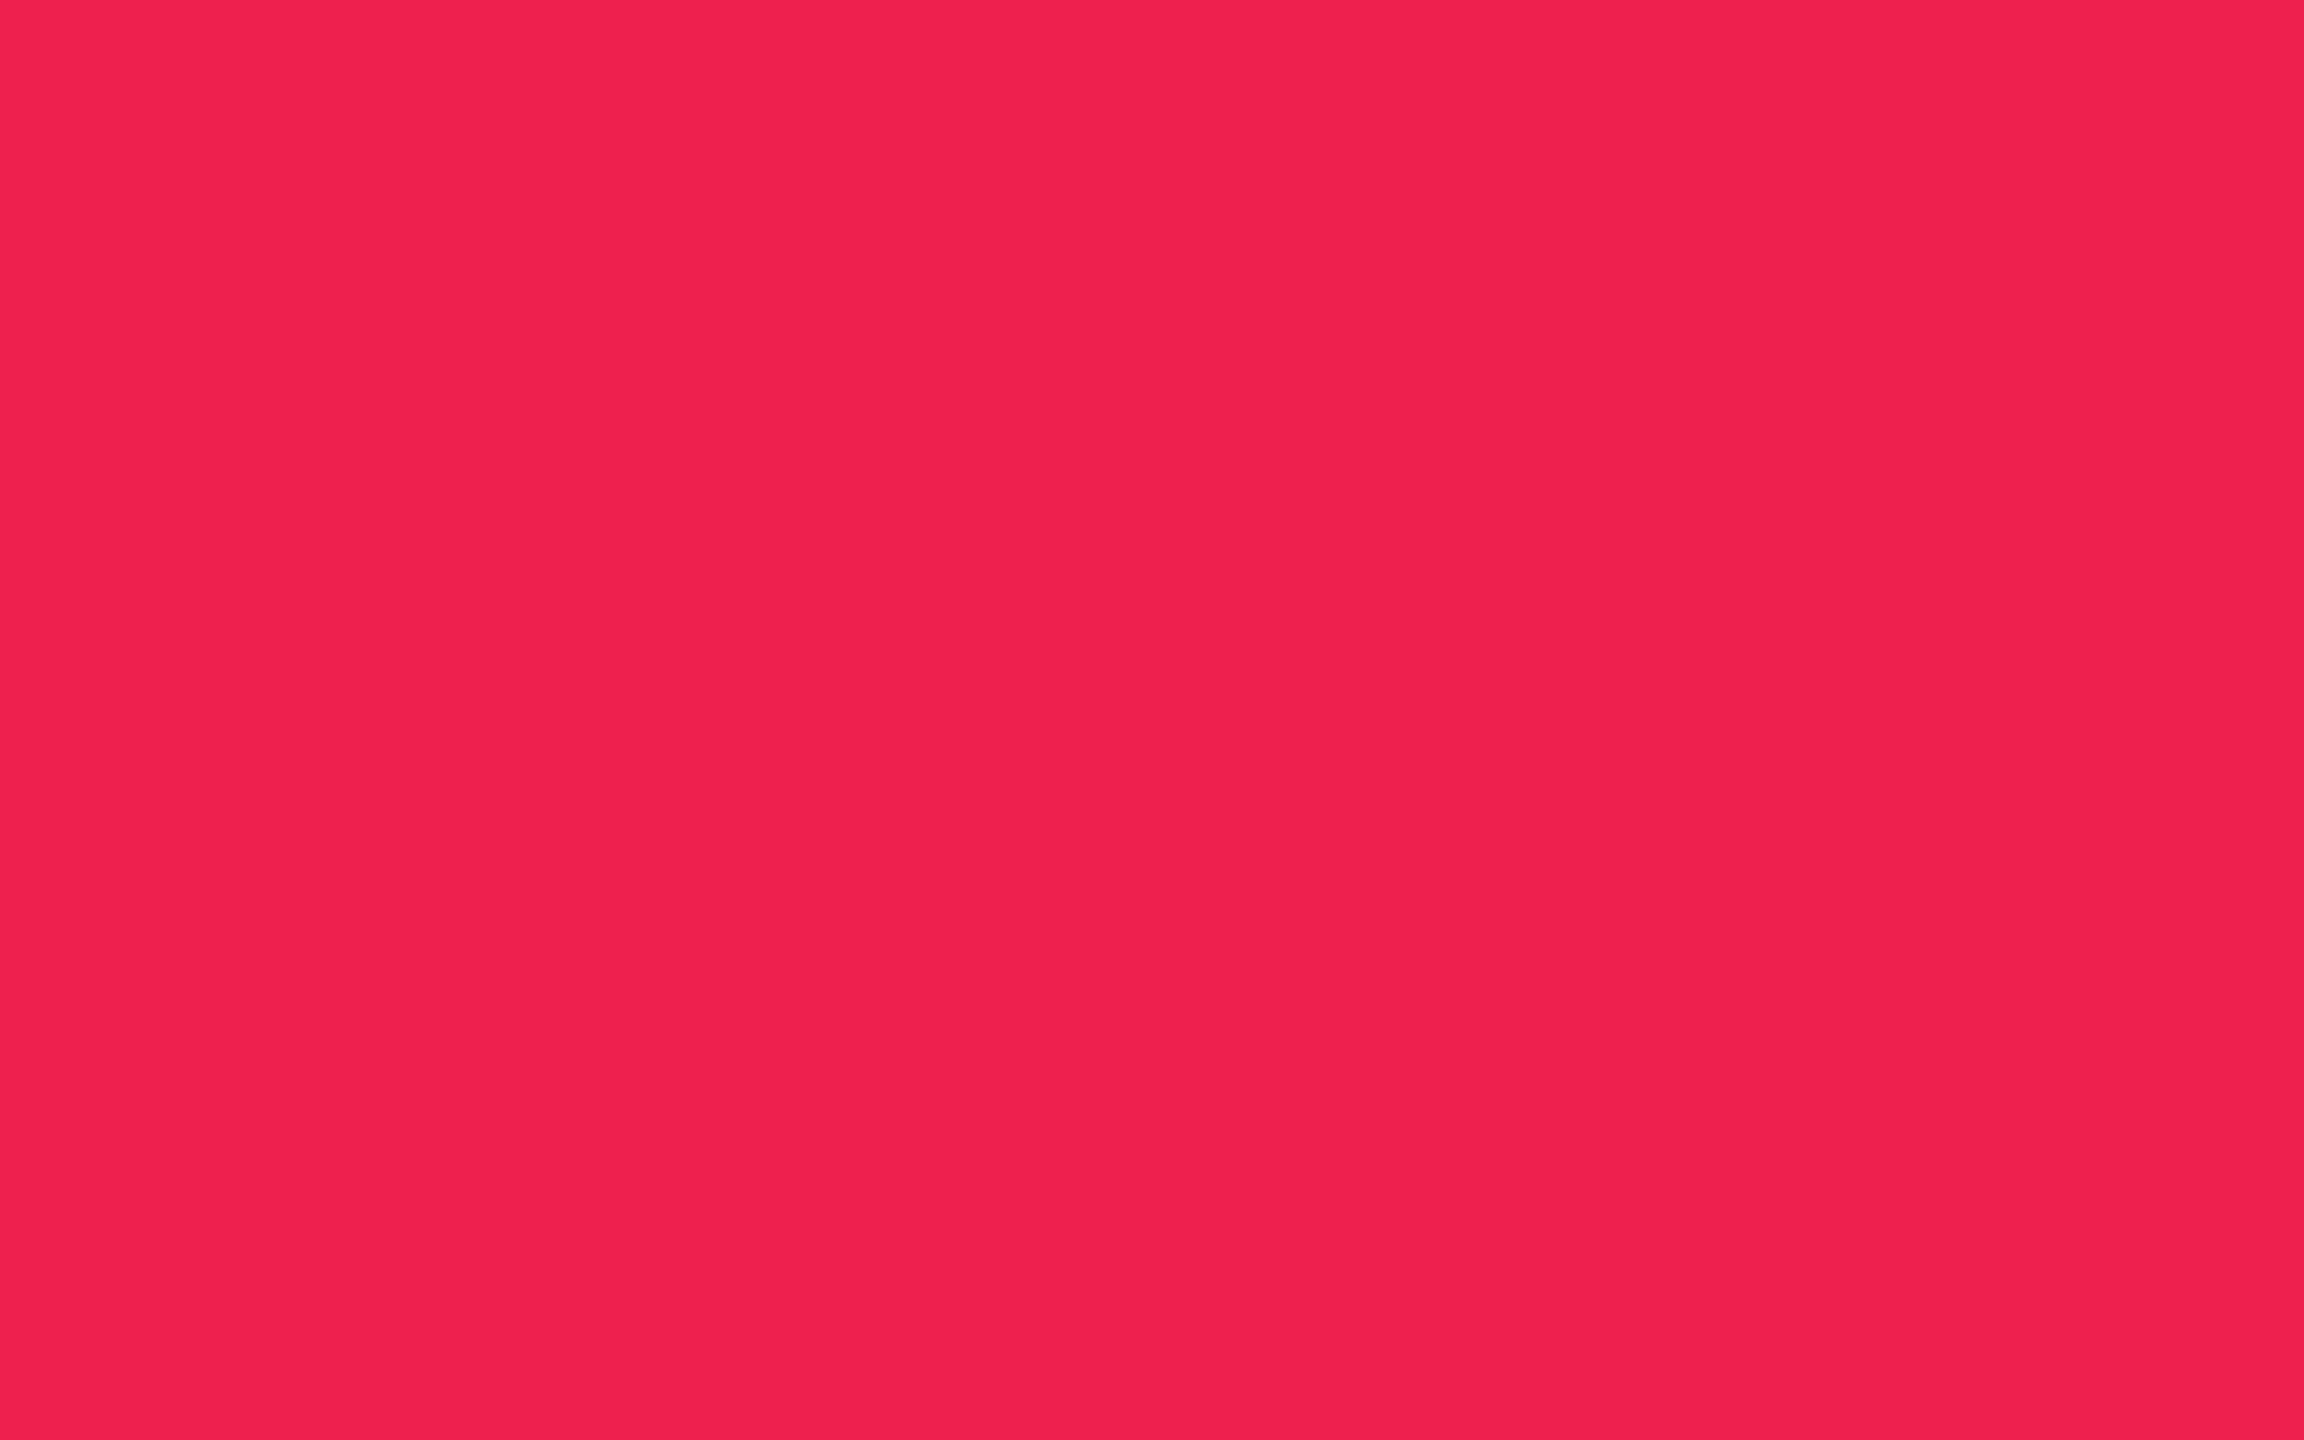 2304x1440 Red Crayola Solid Color Background